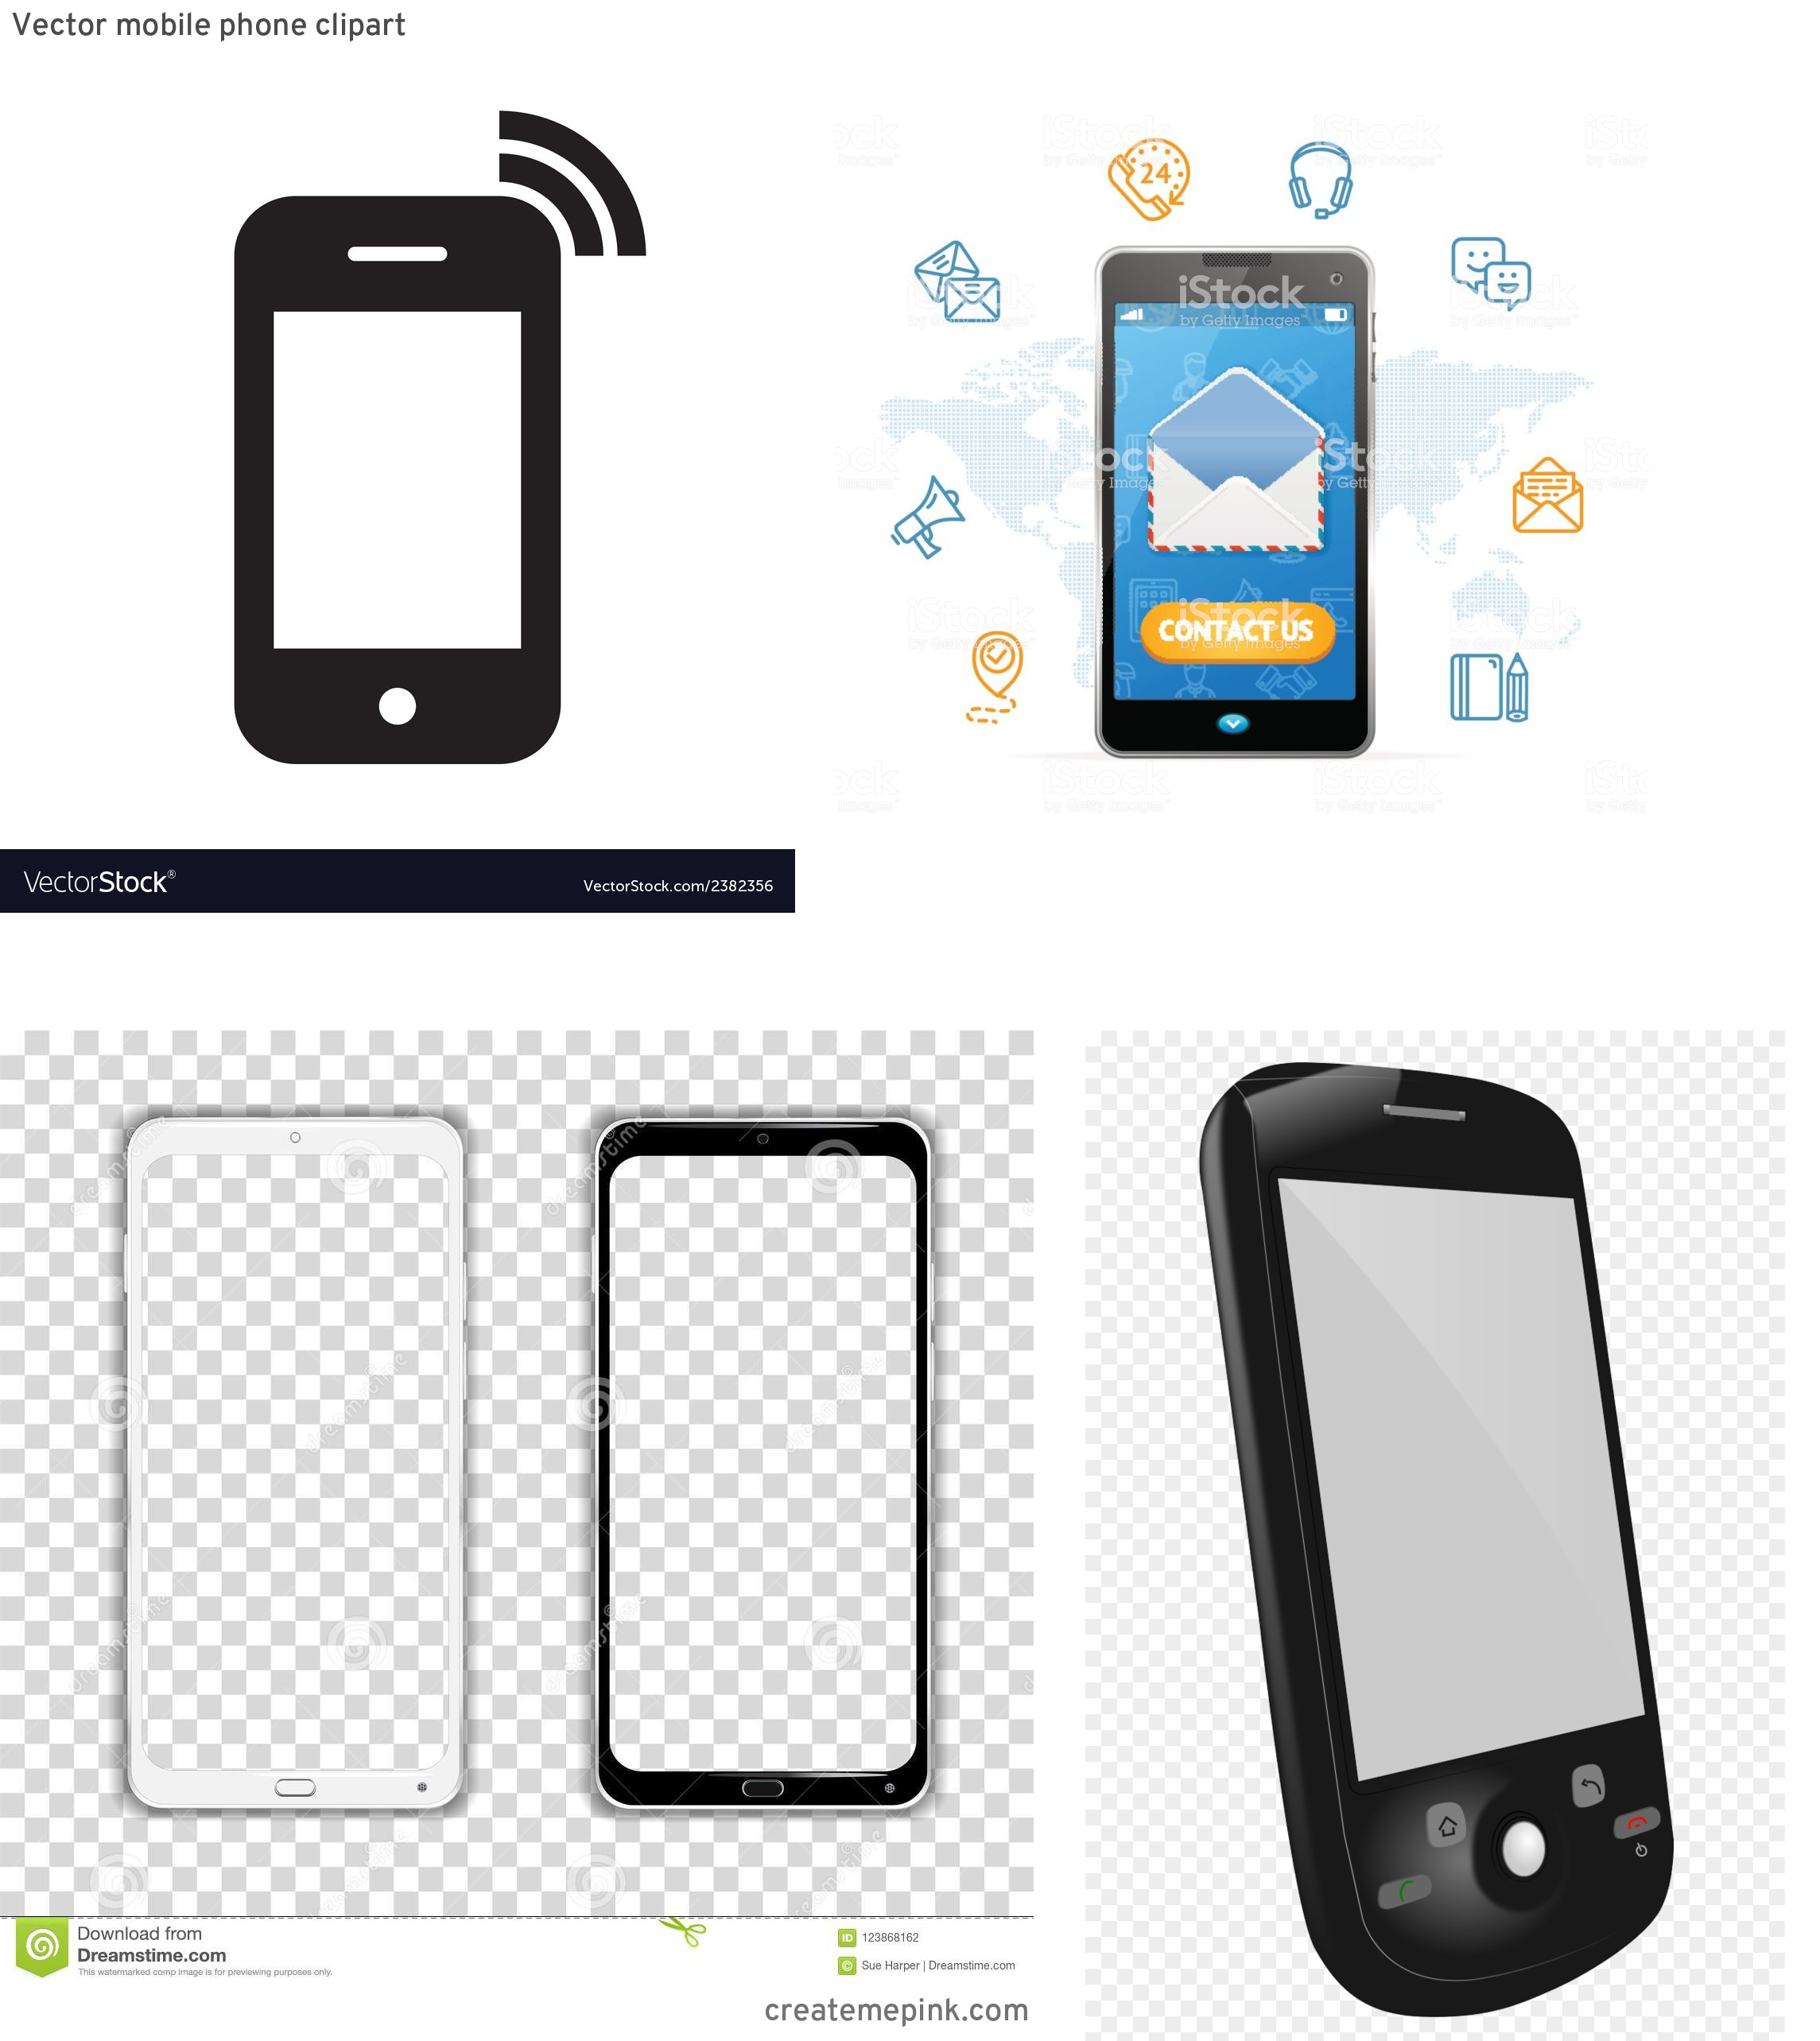 U.S. Cellular Phone Vector: Vector Mobile Phone Clipart